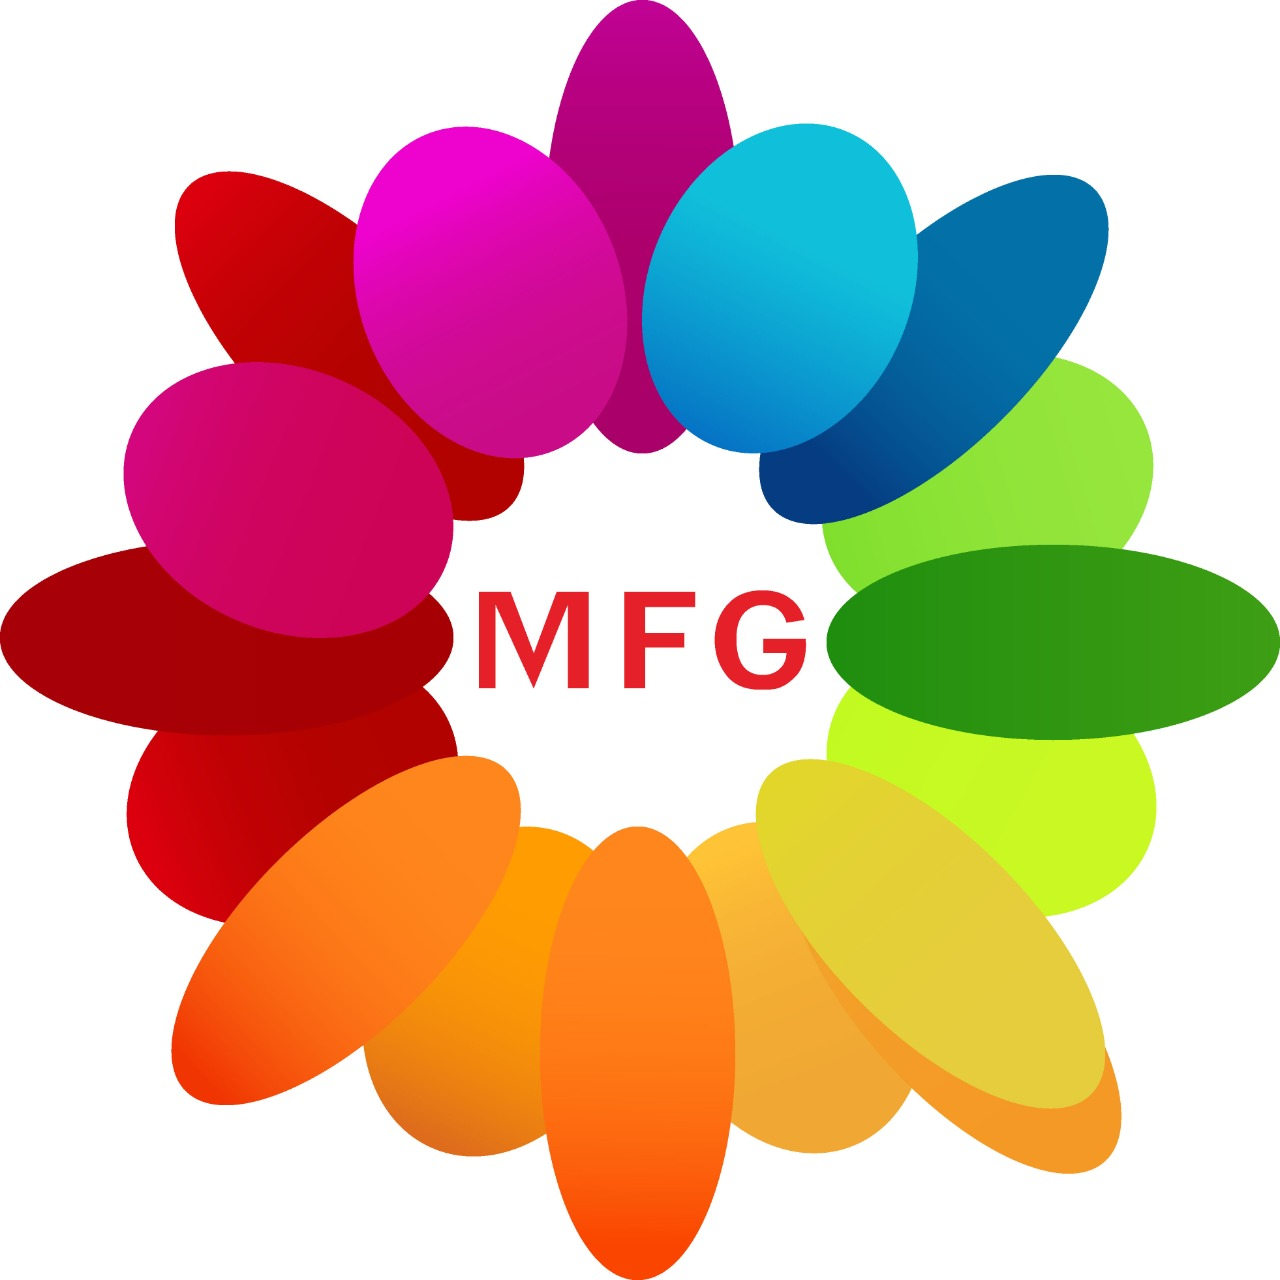 1 Kg white forest fresh cream cake with 3 pink gerberas arranged in glass vase